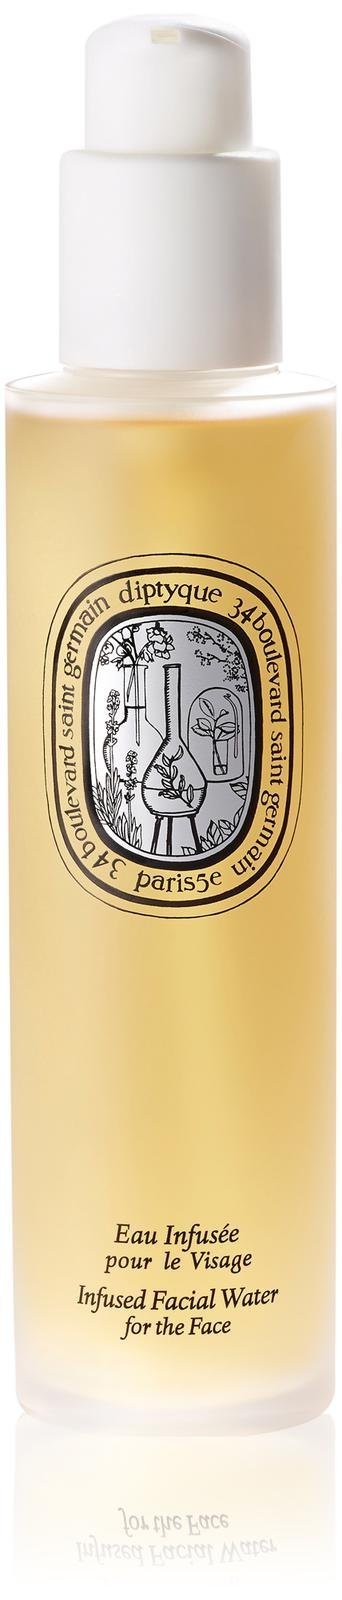 Diptyque Infused Facial Water - 5 oz